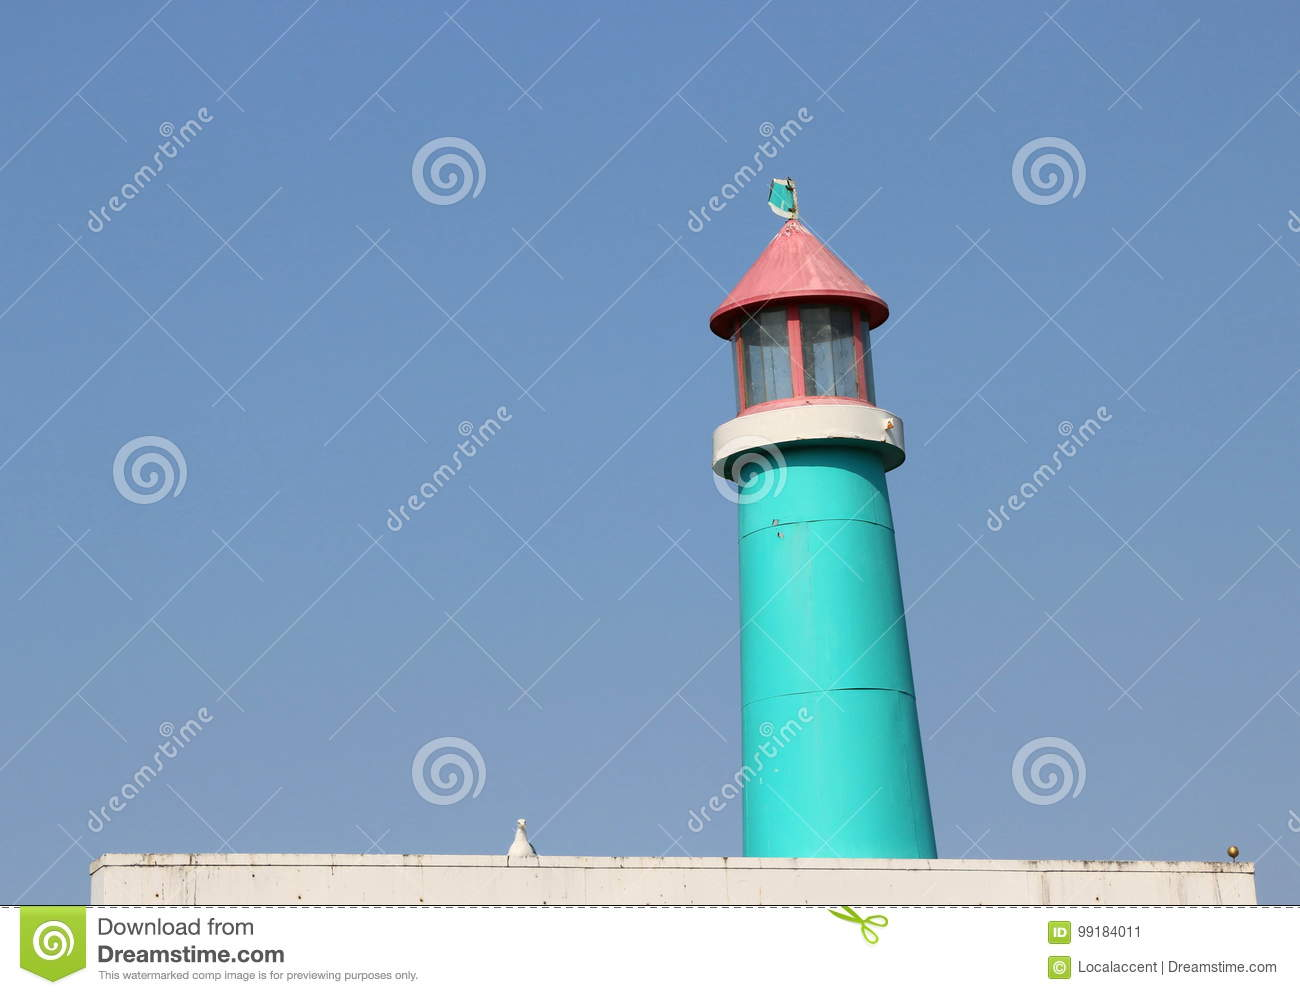 Vintage, wooden blue and pink lighthouse.